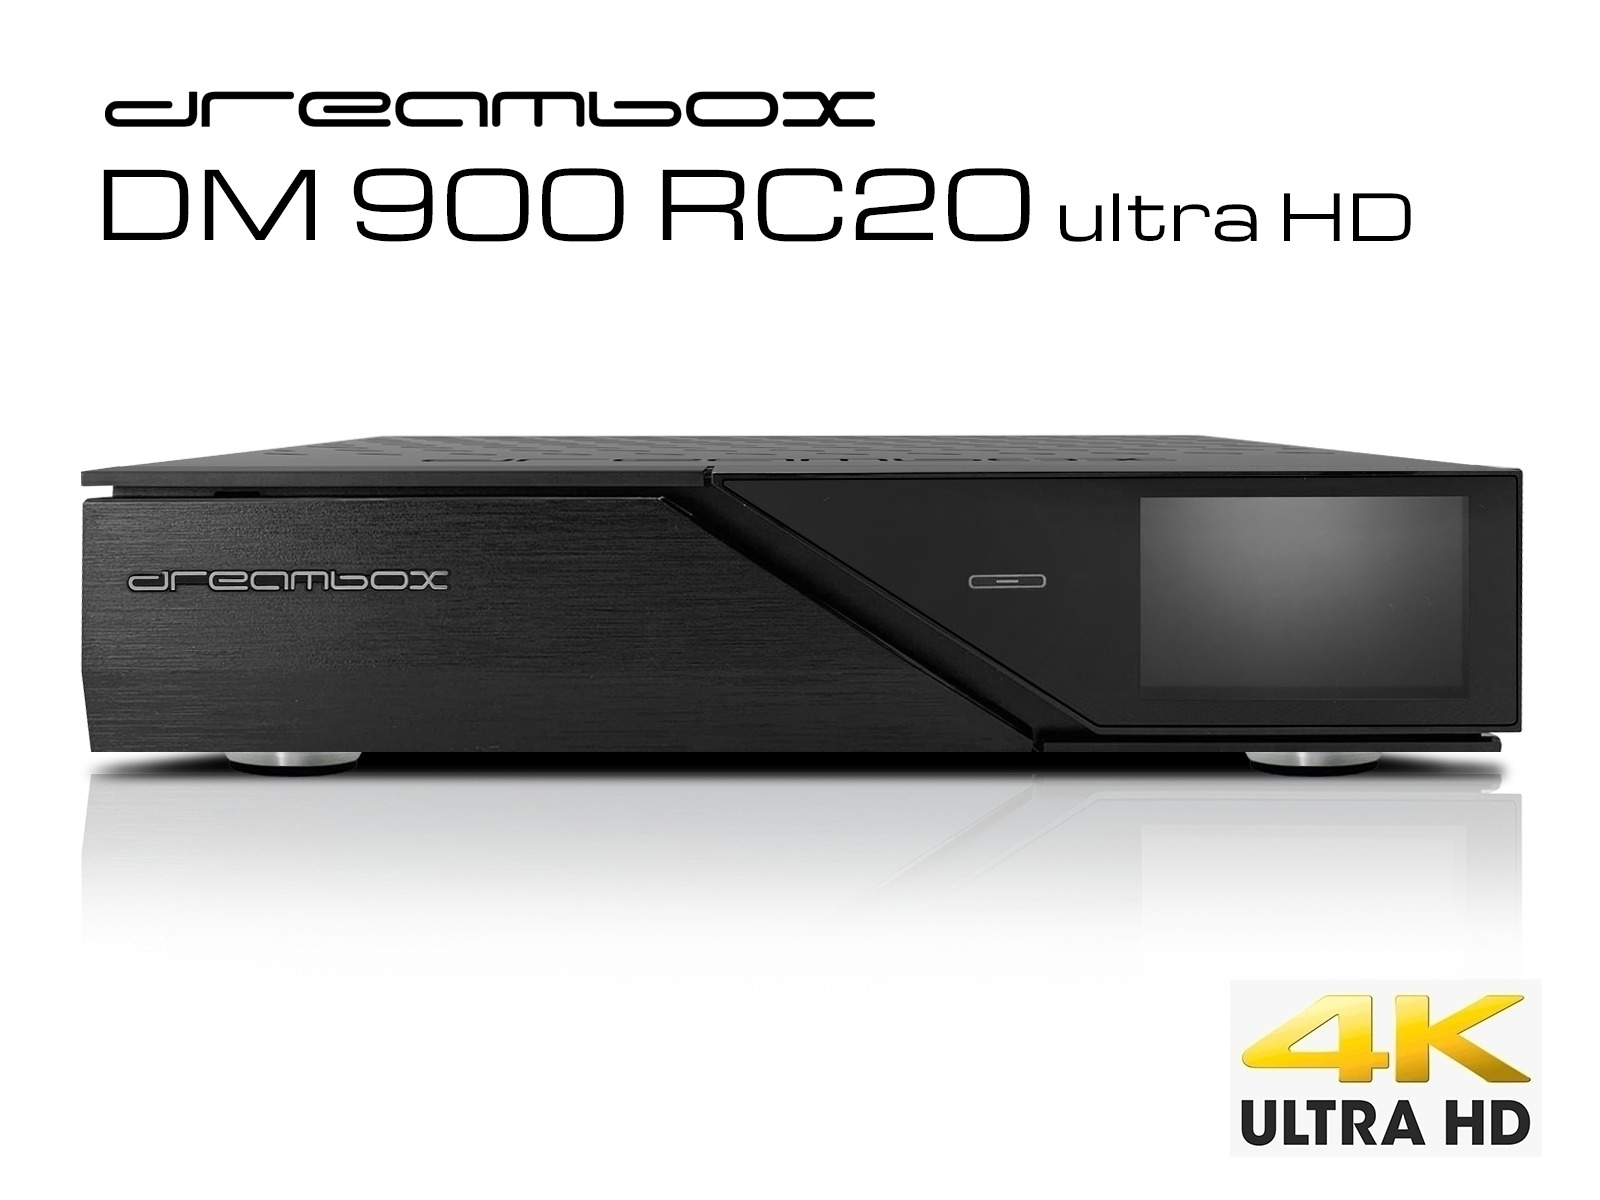 Dreambox DM900 RC20 UHD 4K 1xDVB-S2 FBC TwinTuner E2 Linux PVR